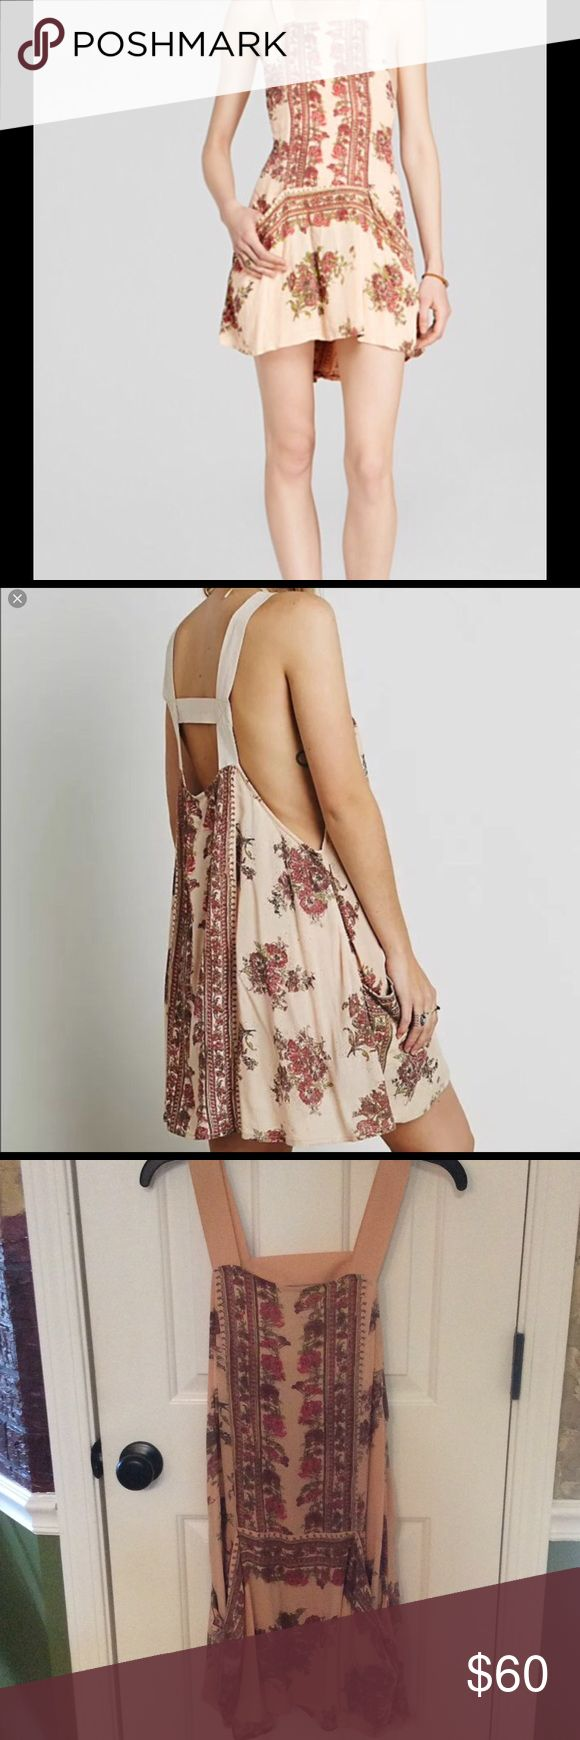 NWT Free People Paradise Song Slip Dress Very cute on with or without jeans or shorts underneath! It's just been hanging in my closet. Tried it on, but never wore it. Smoke Free Home. Free People Dresses Mini